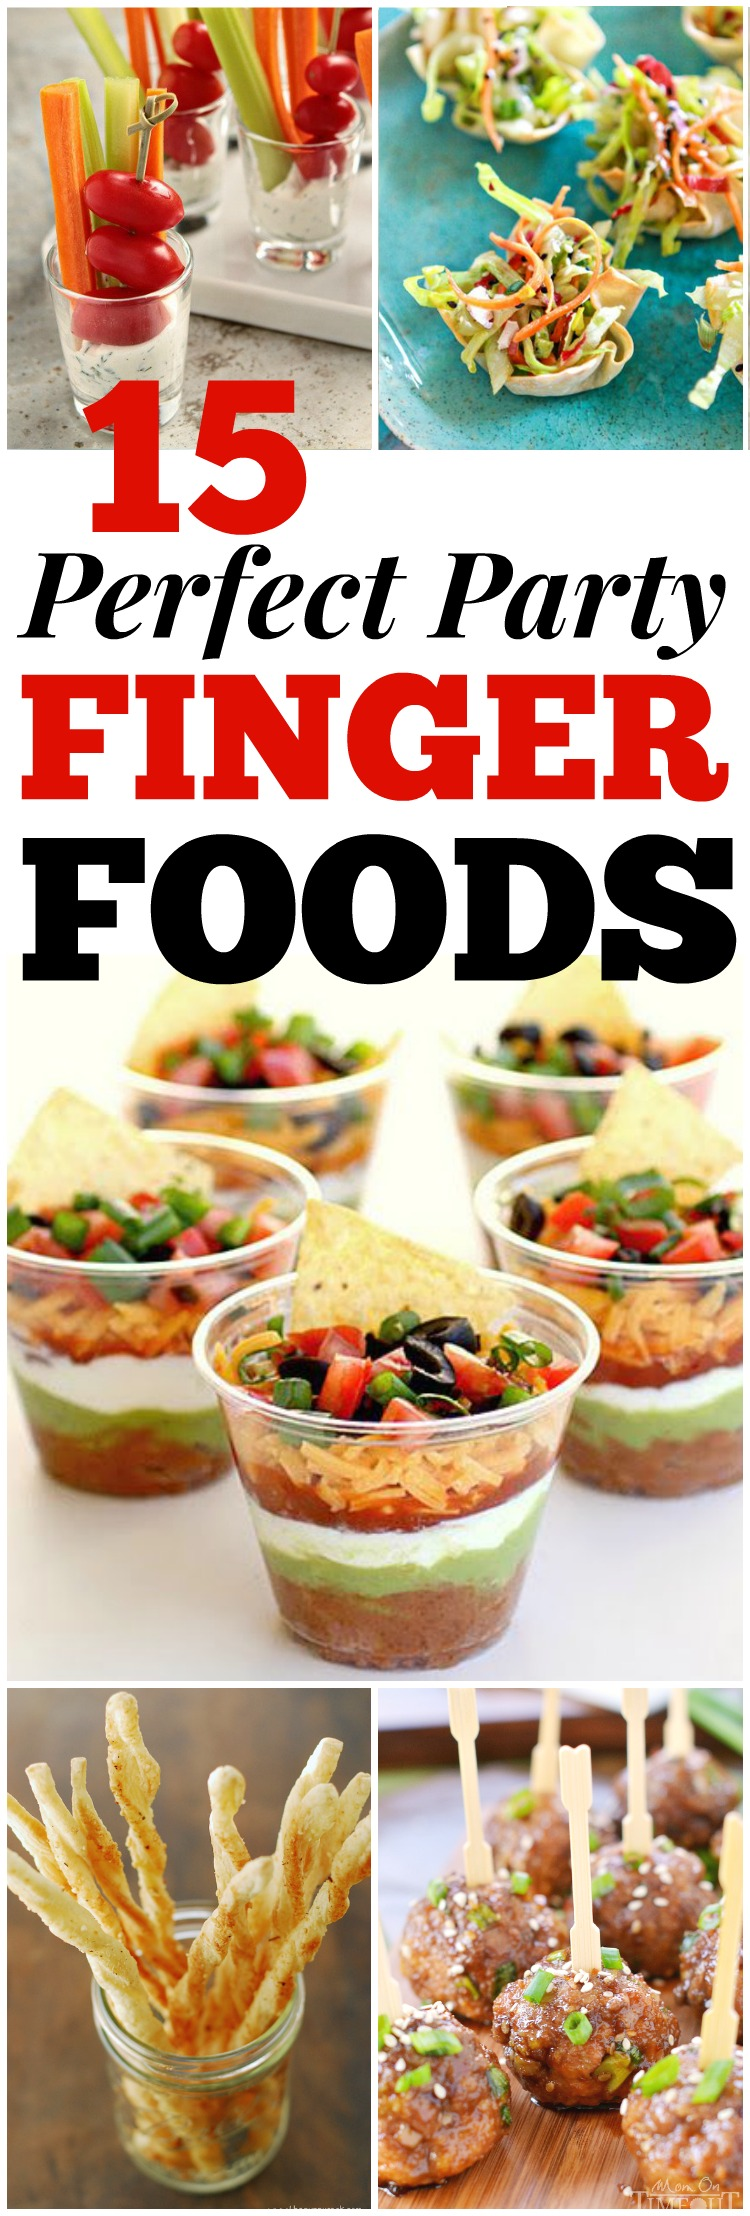 15 Perfect Party Finger Foods